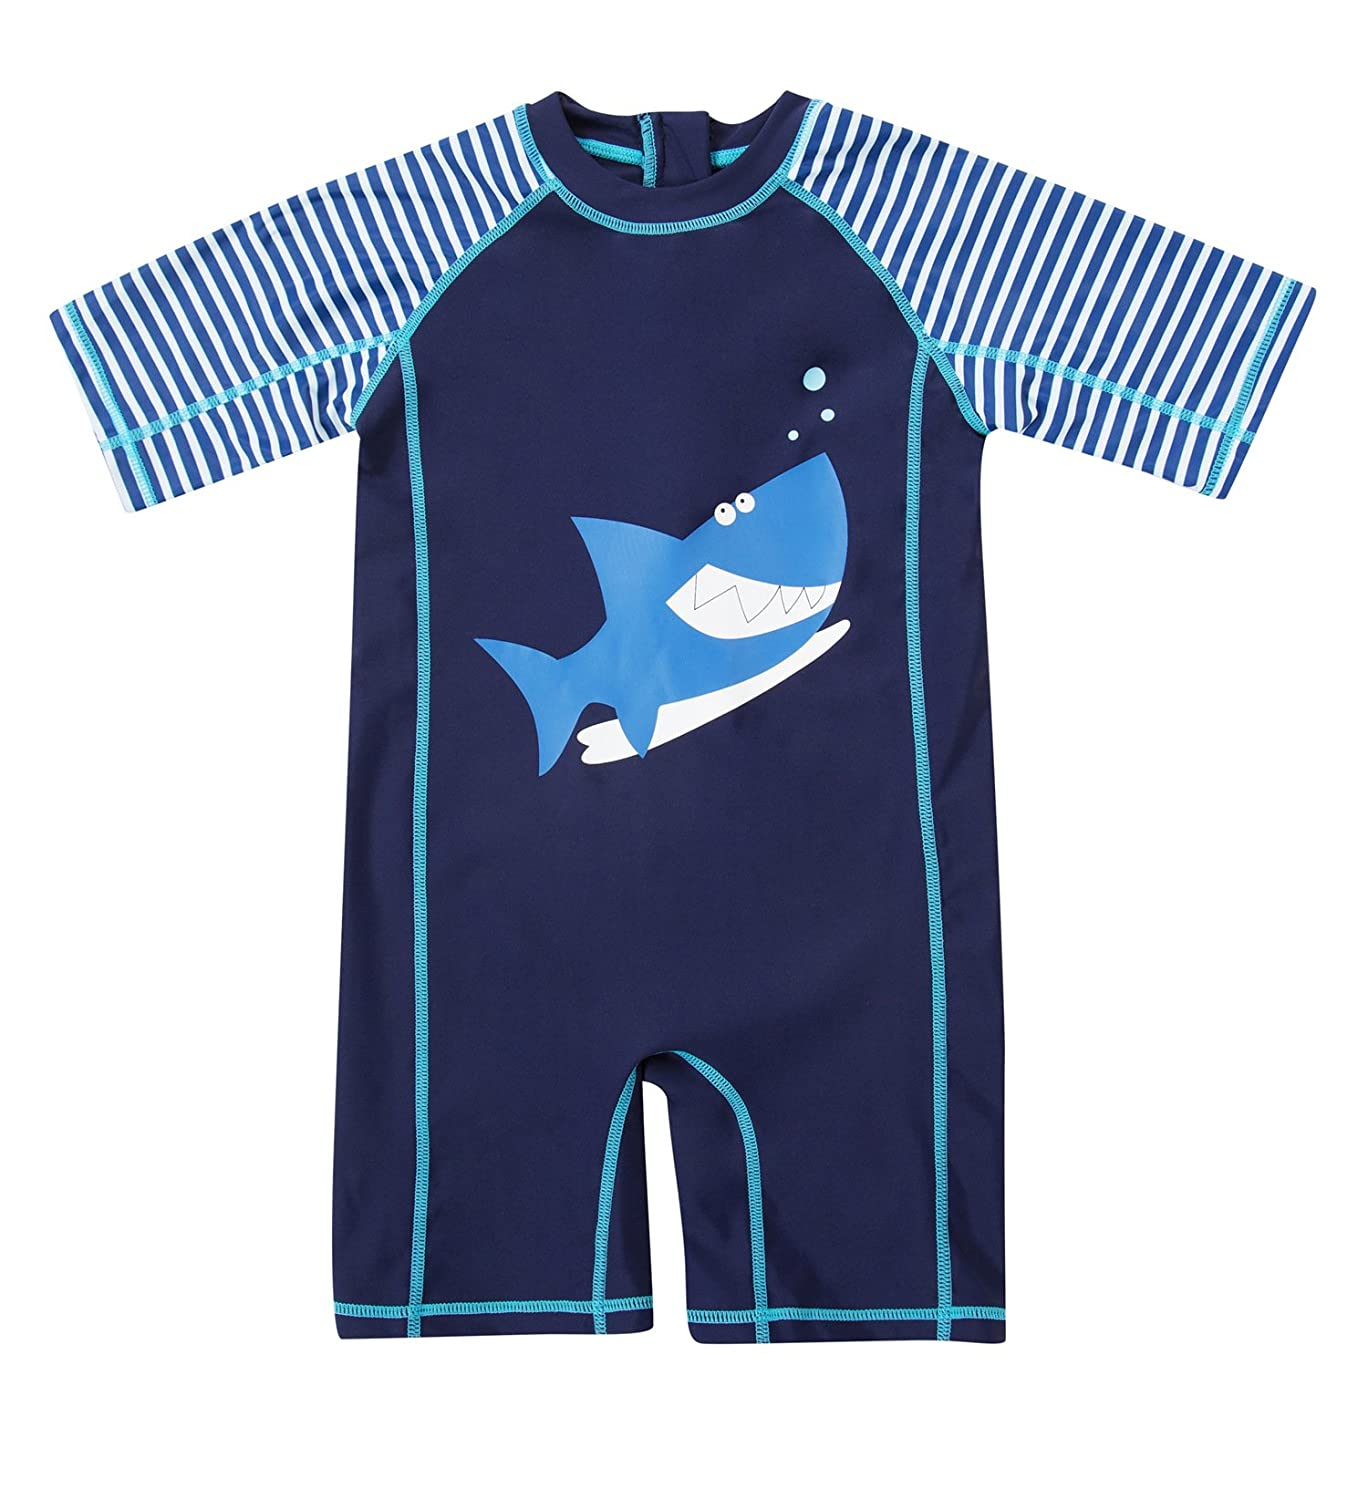 ATTRACO Baby Girls Boys Zip Rash Vest UV One Piece Rash Guard Swimwear UPF 50+